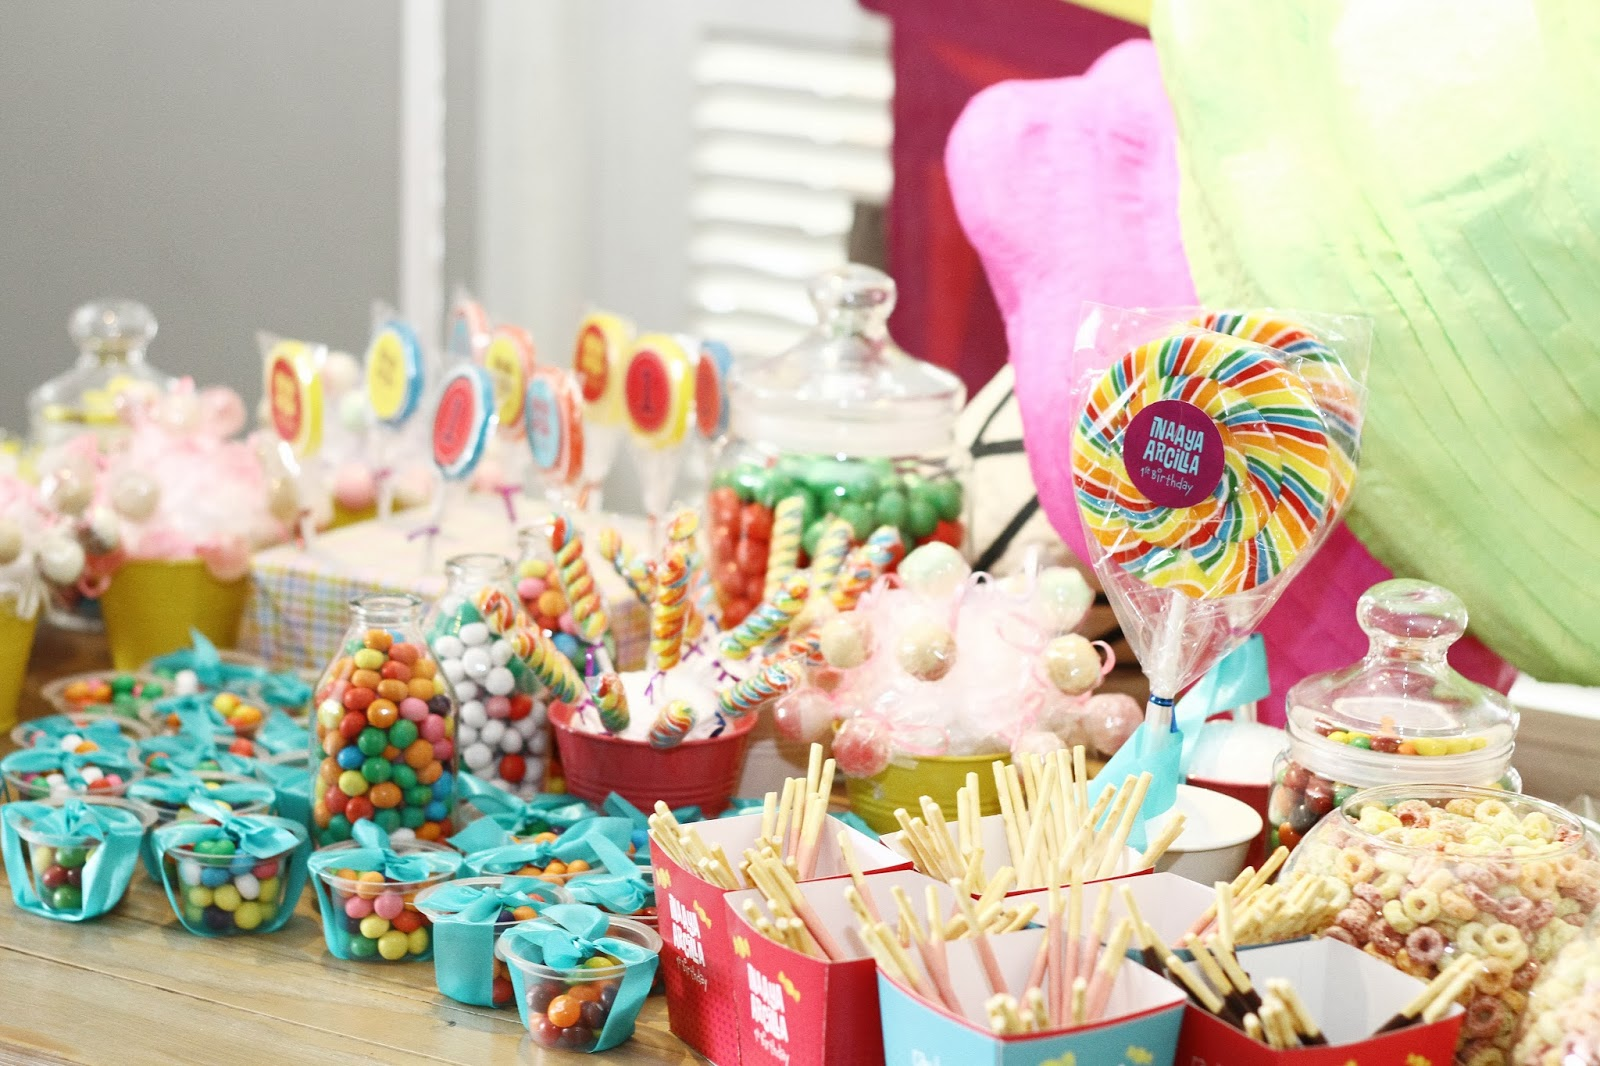 Inaaya Arcilla S 1 Candyland Party Family And Lifestyle Blog